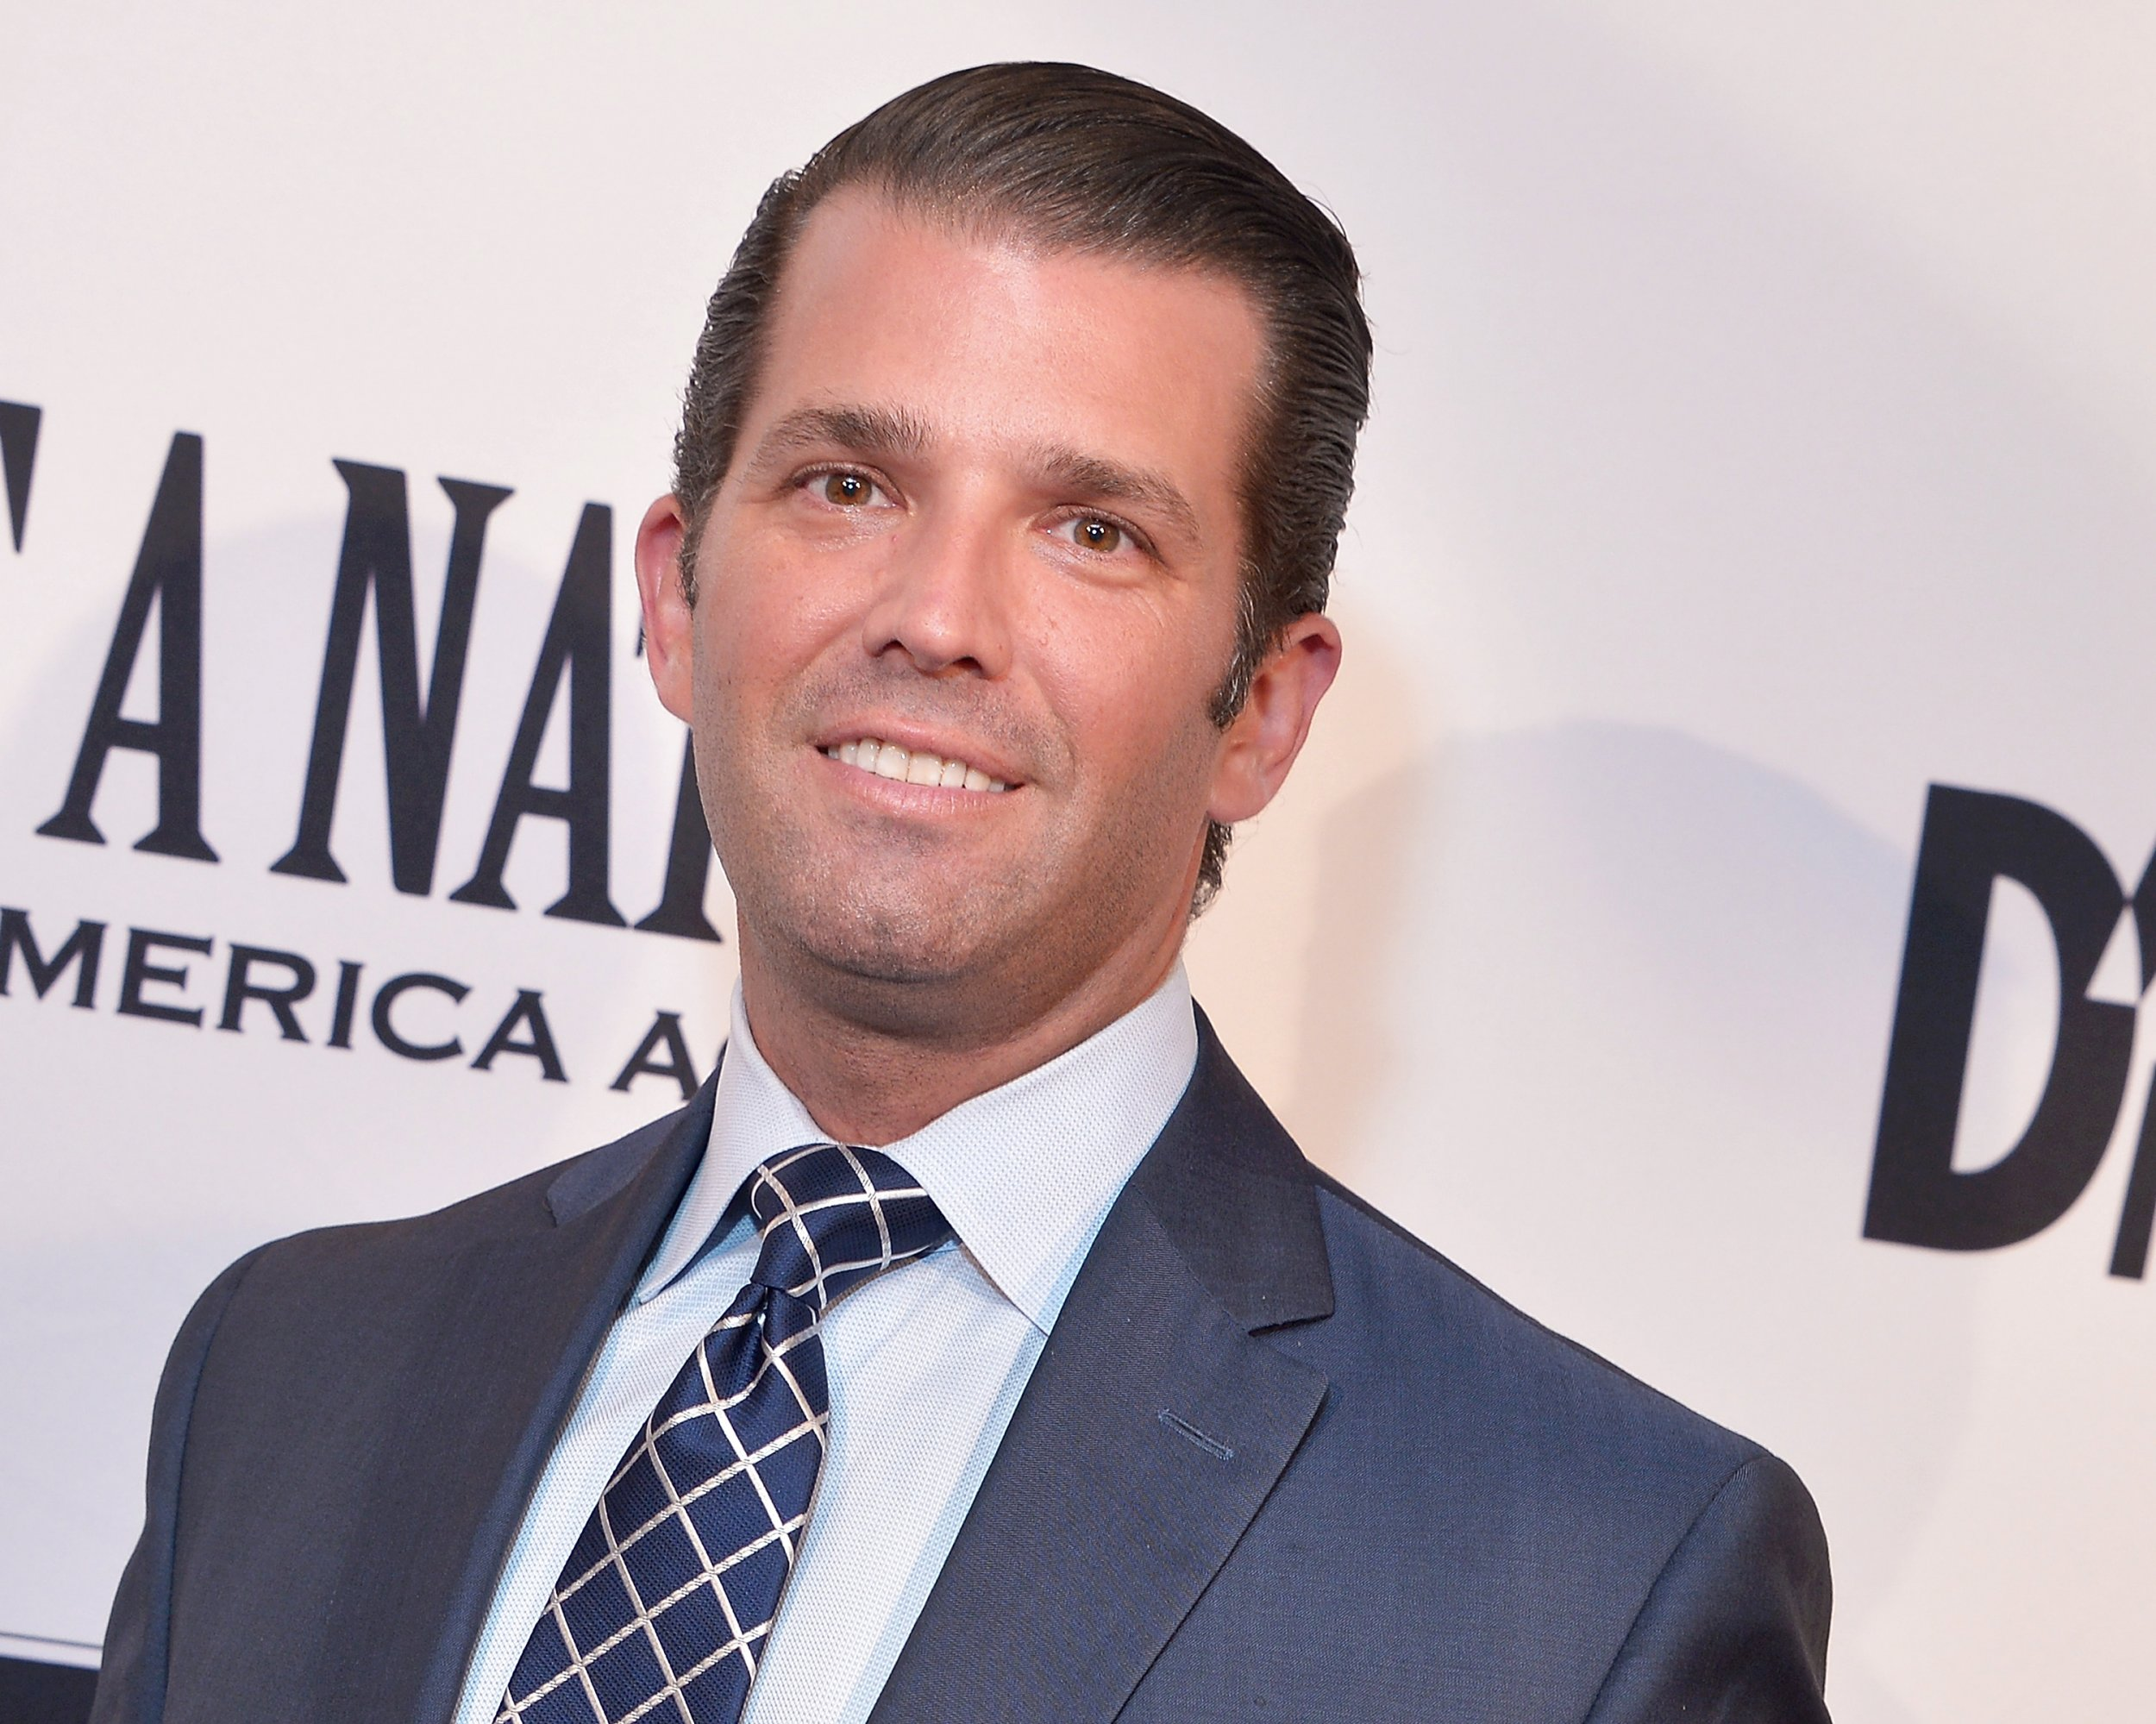 Donald Trump Jr Instagram Mueller